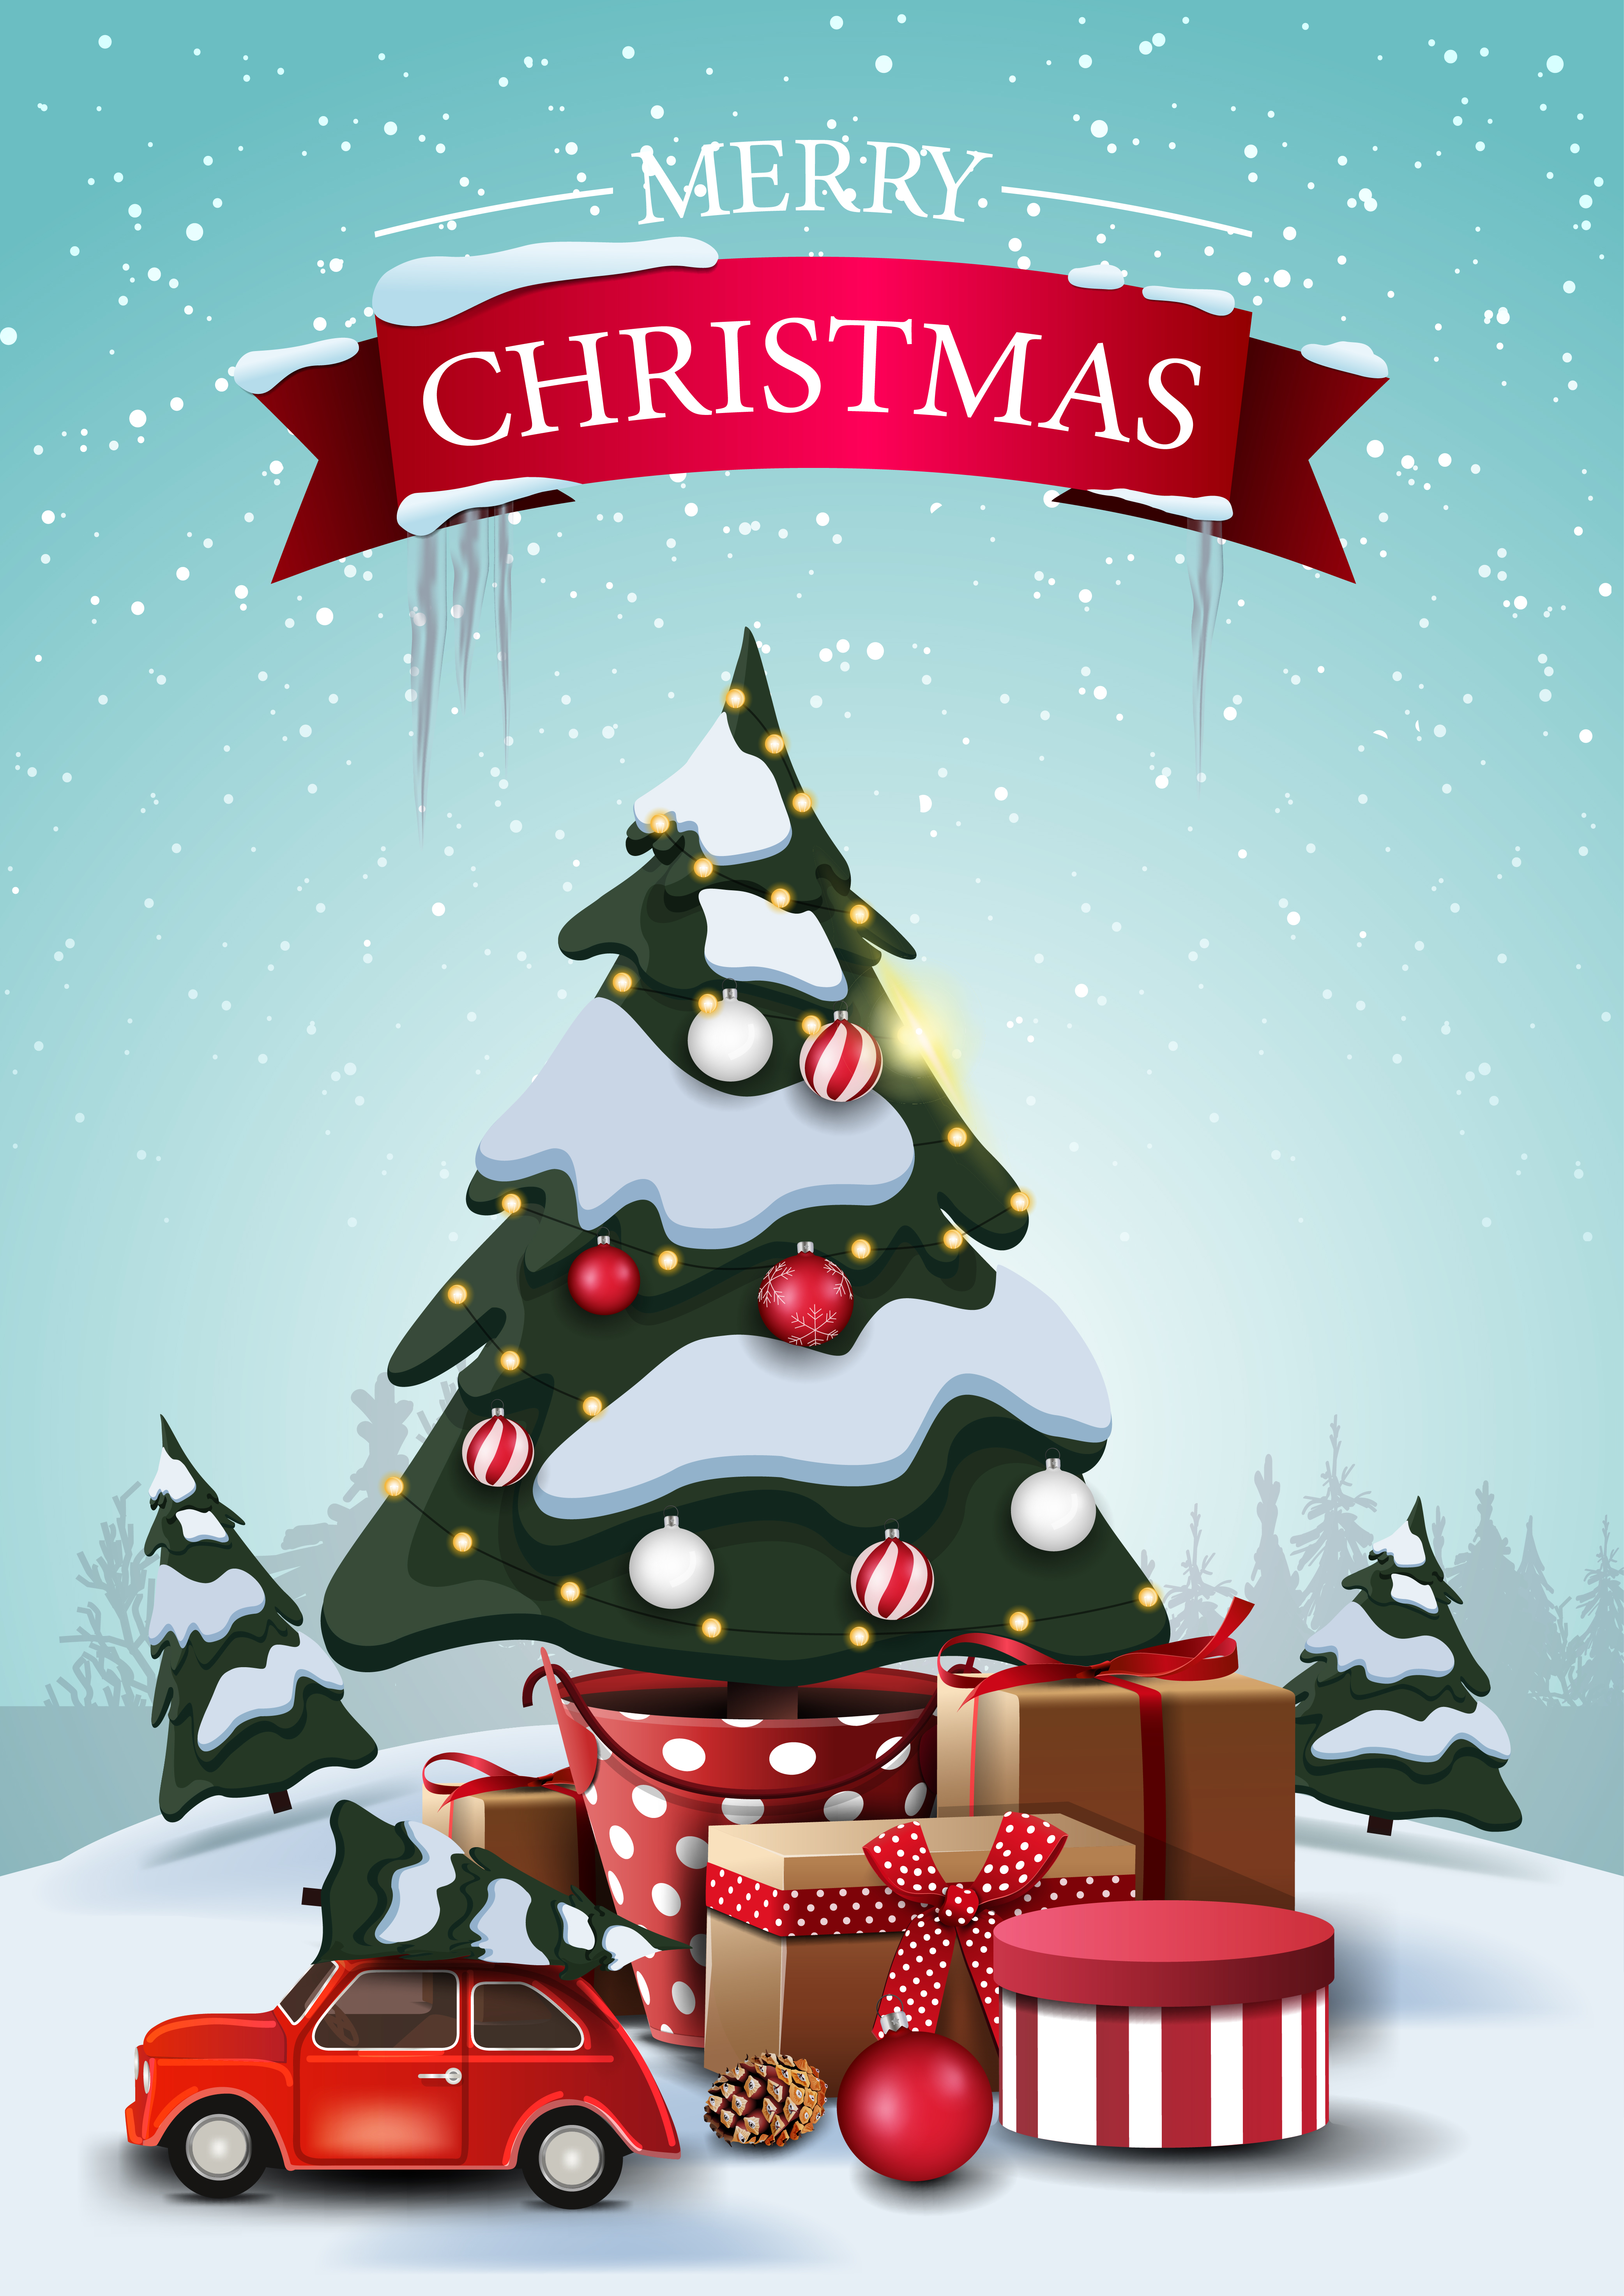 Merry Christmas Vertical Postcard With Cartoon Spruces Drifts Blue Sky Christmas Tree In A Pot With Gifts And Red Vintage Car Carrying Christmas Tree Download Free Vectors Clipart Graphics Vector